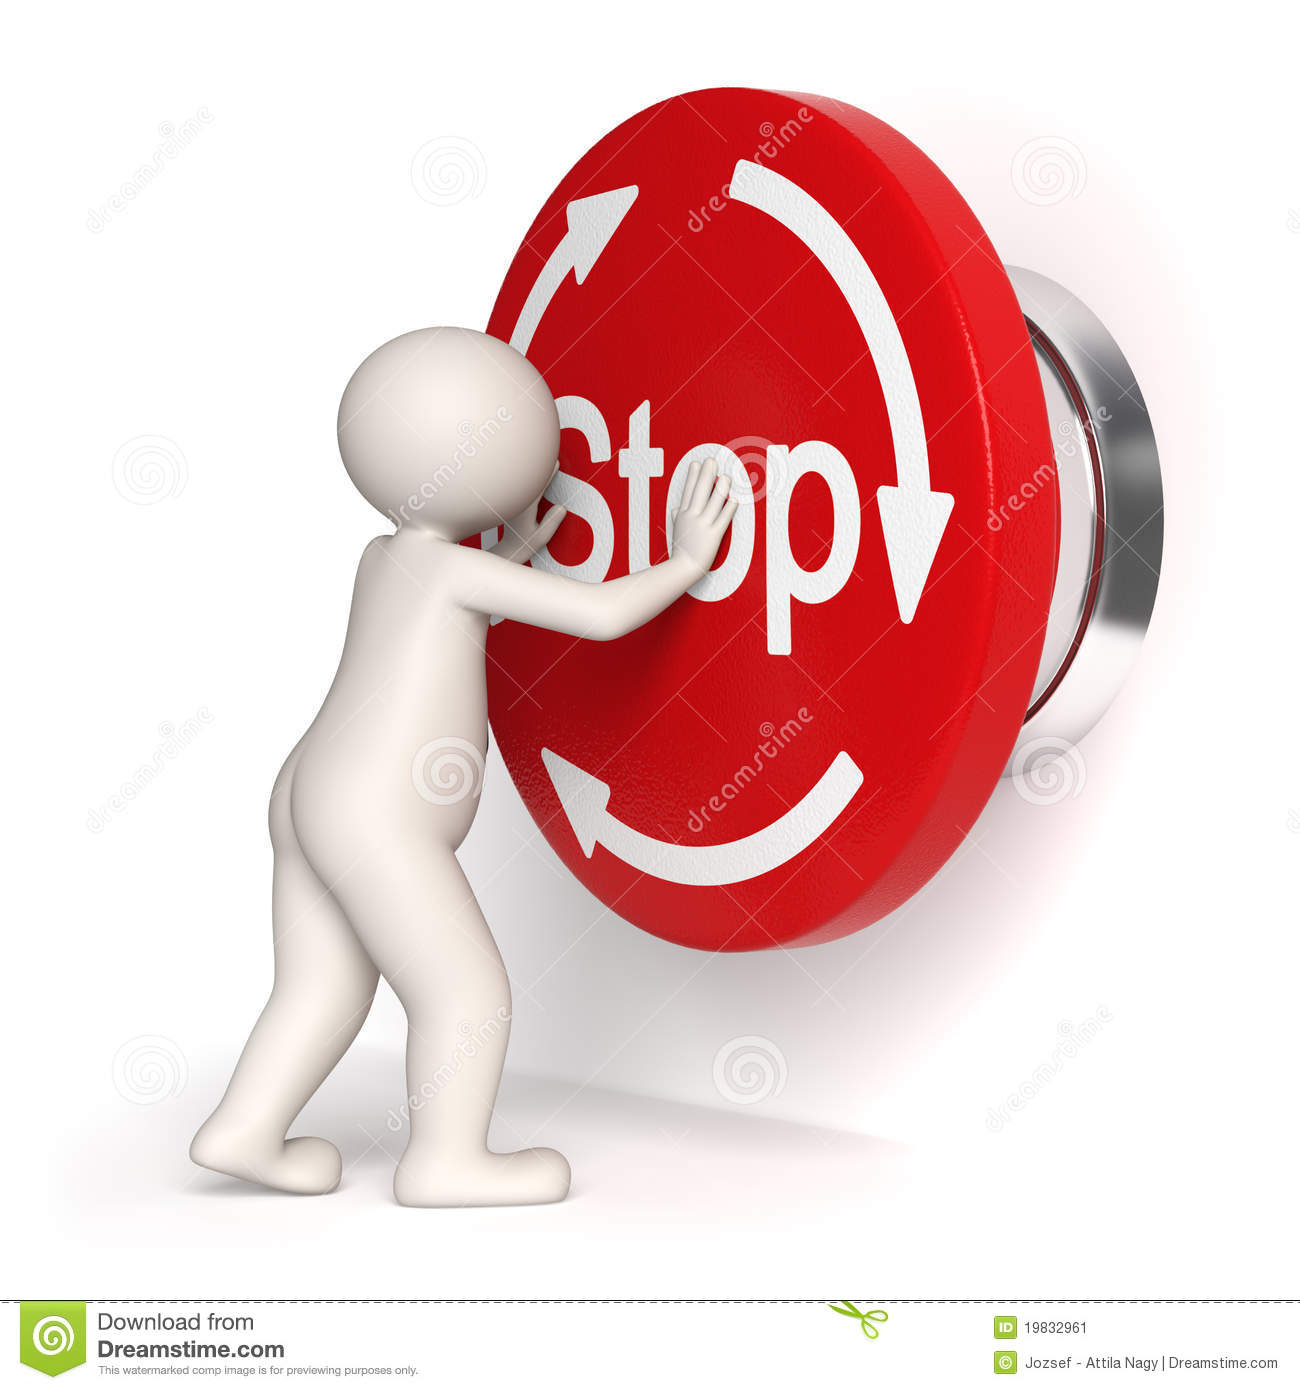 Emergency Stop Stock Photos, Images, & Pictures.